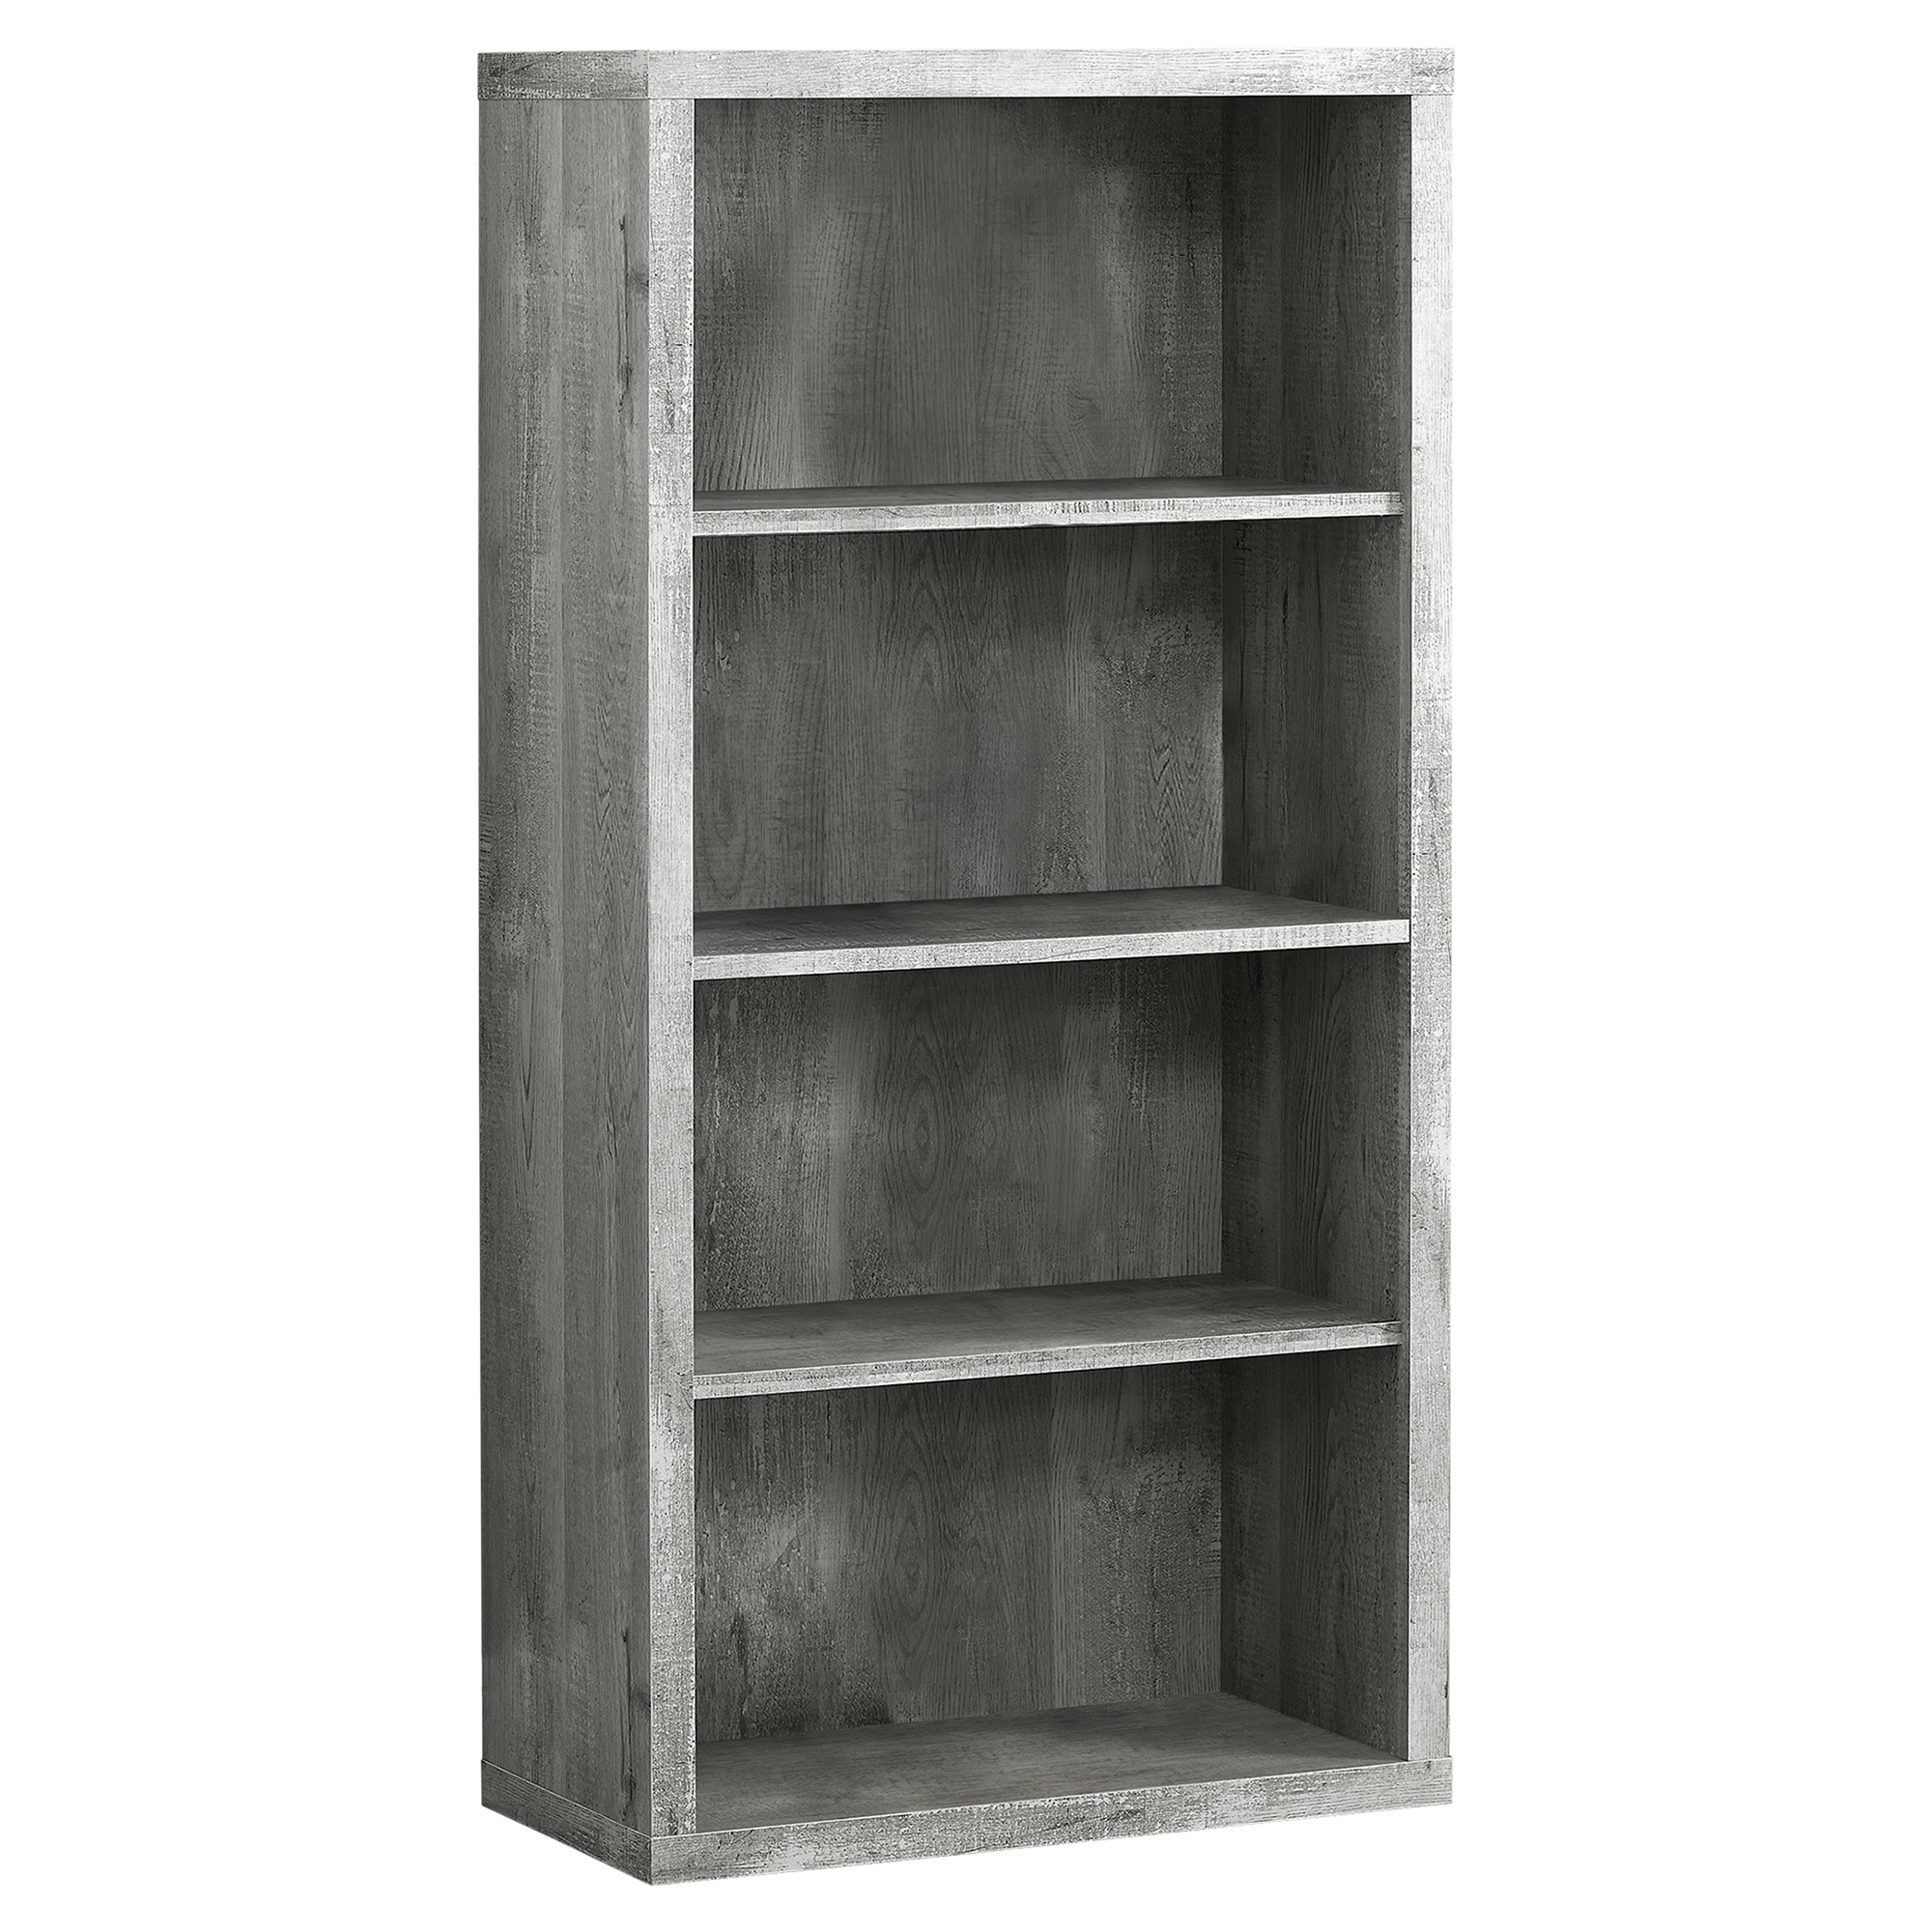 "BOOKCASE - 48""H / GREY WOOD GRAIN / ADJUSTABLE SHELVES"